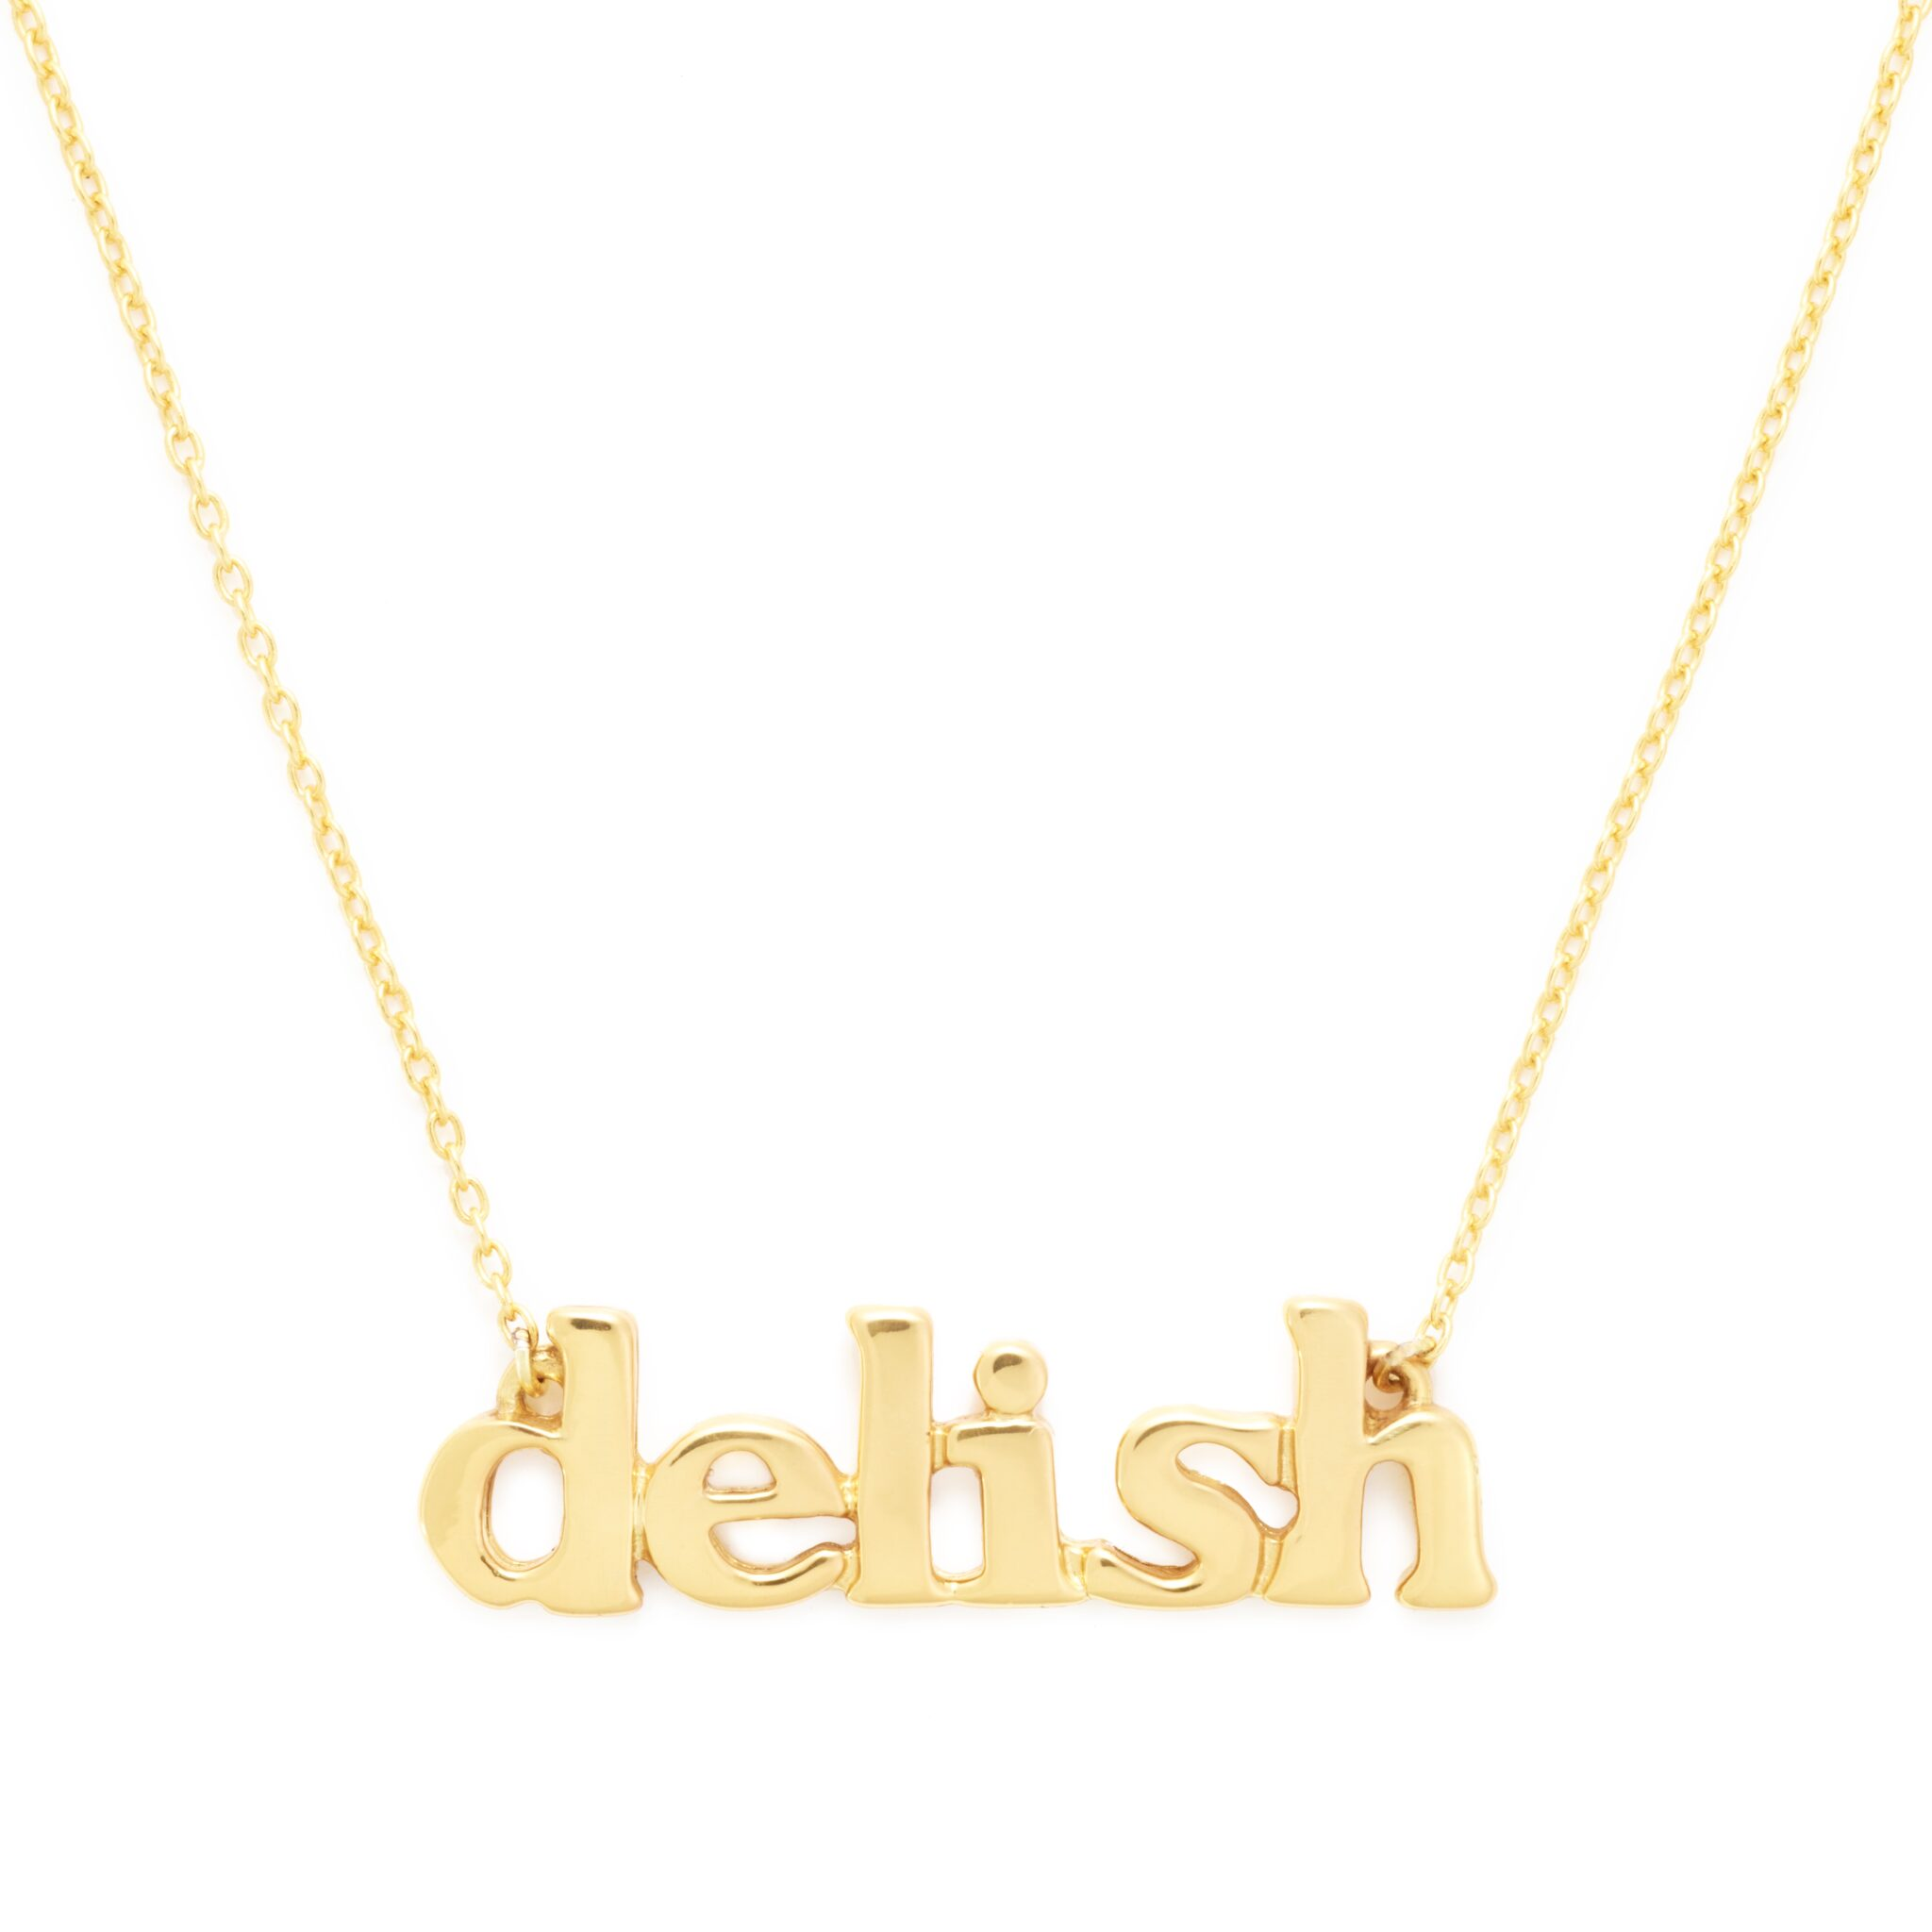 Yellow Gold Plated Delish Necklace